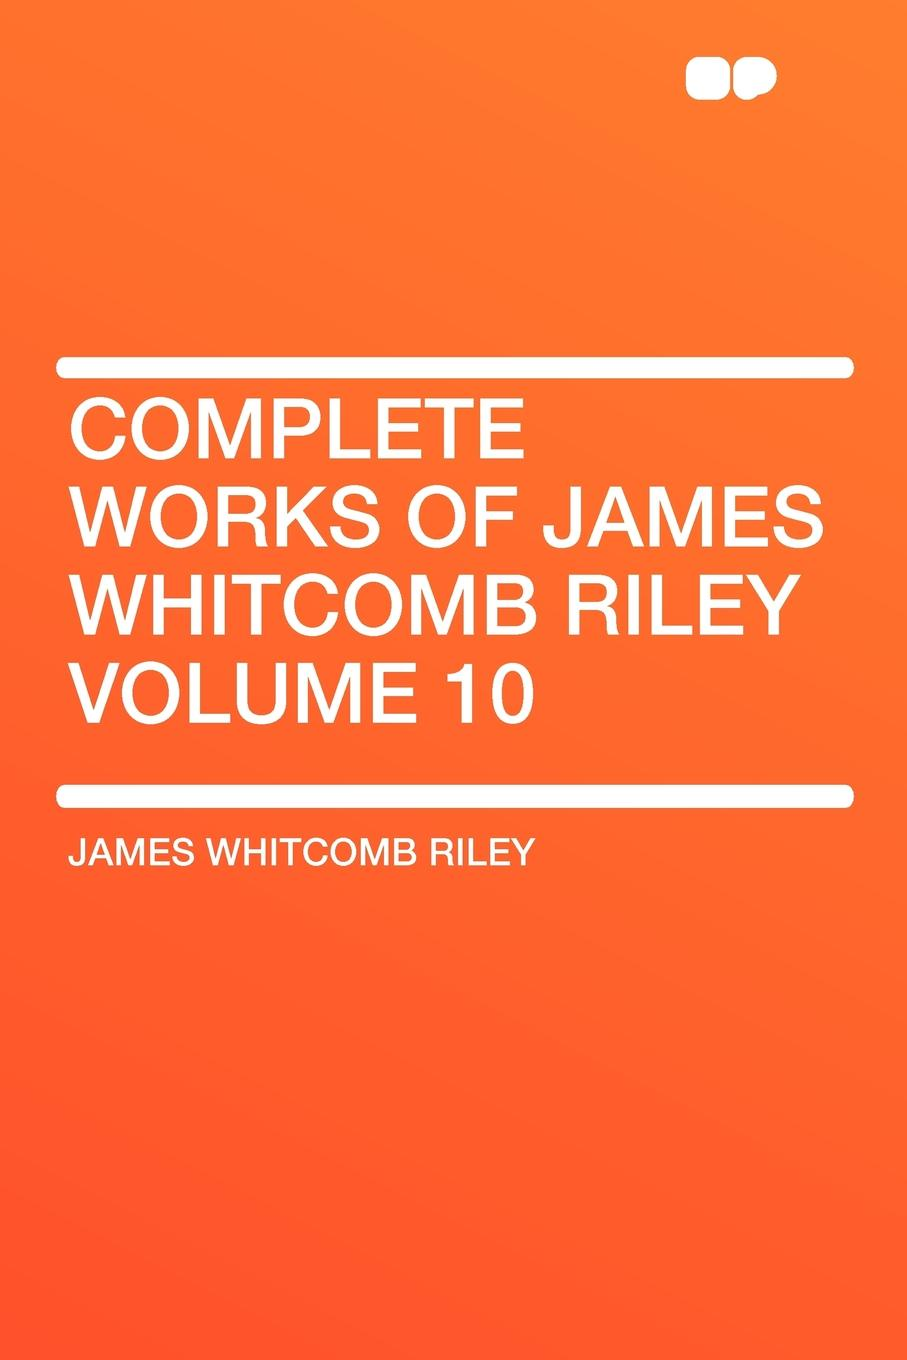 James Whitcomb Riley Complete Works of James Whitcomb Riley Volume 10 lucinda riley tormiõde